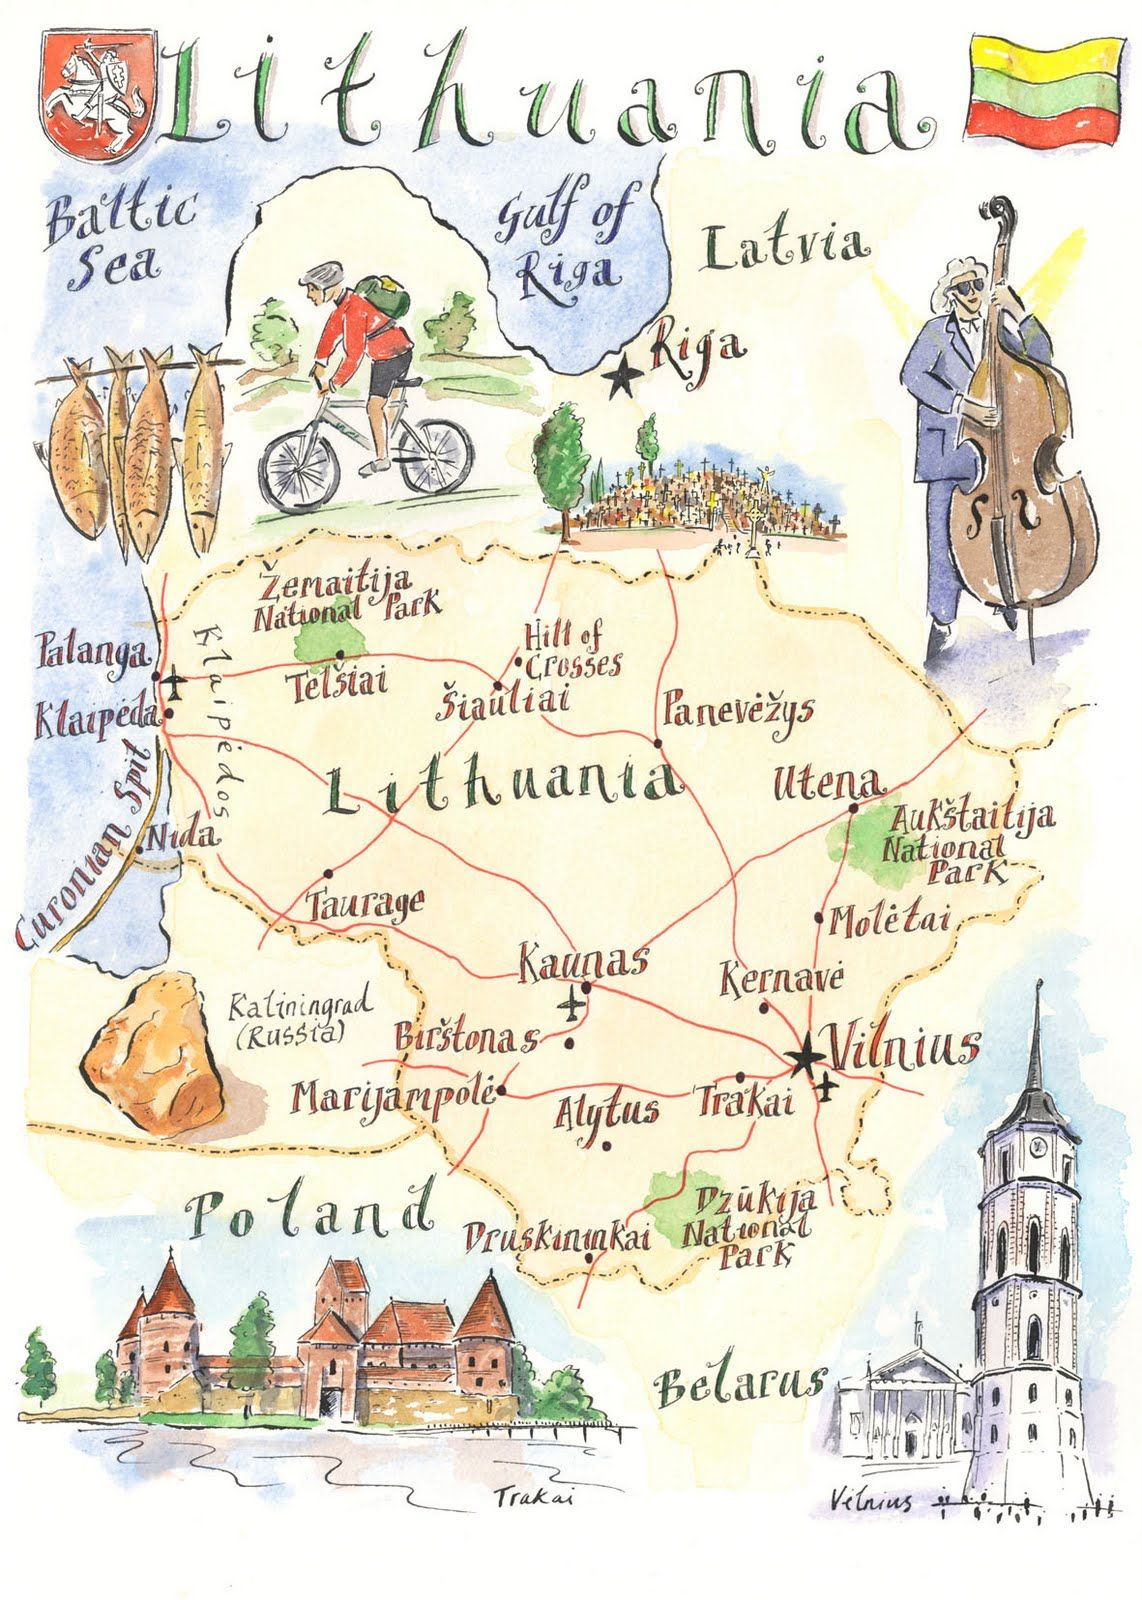 Lithuania Illustrated Map | Lithuania | Pinterest | Illustrated maps ...